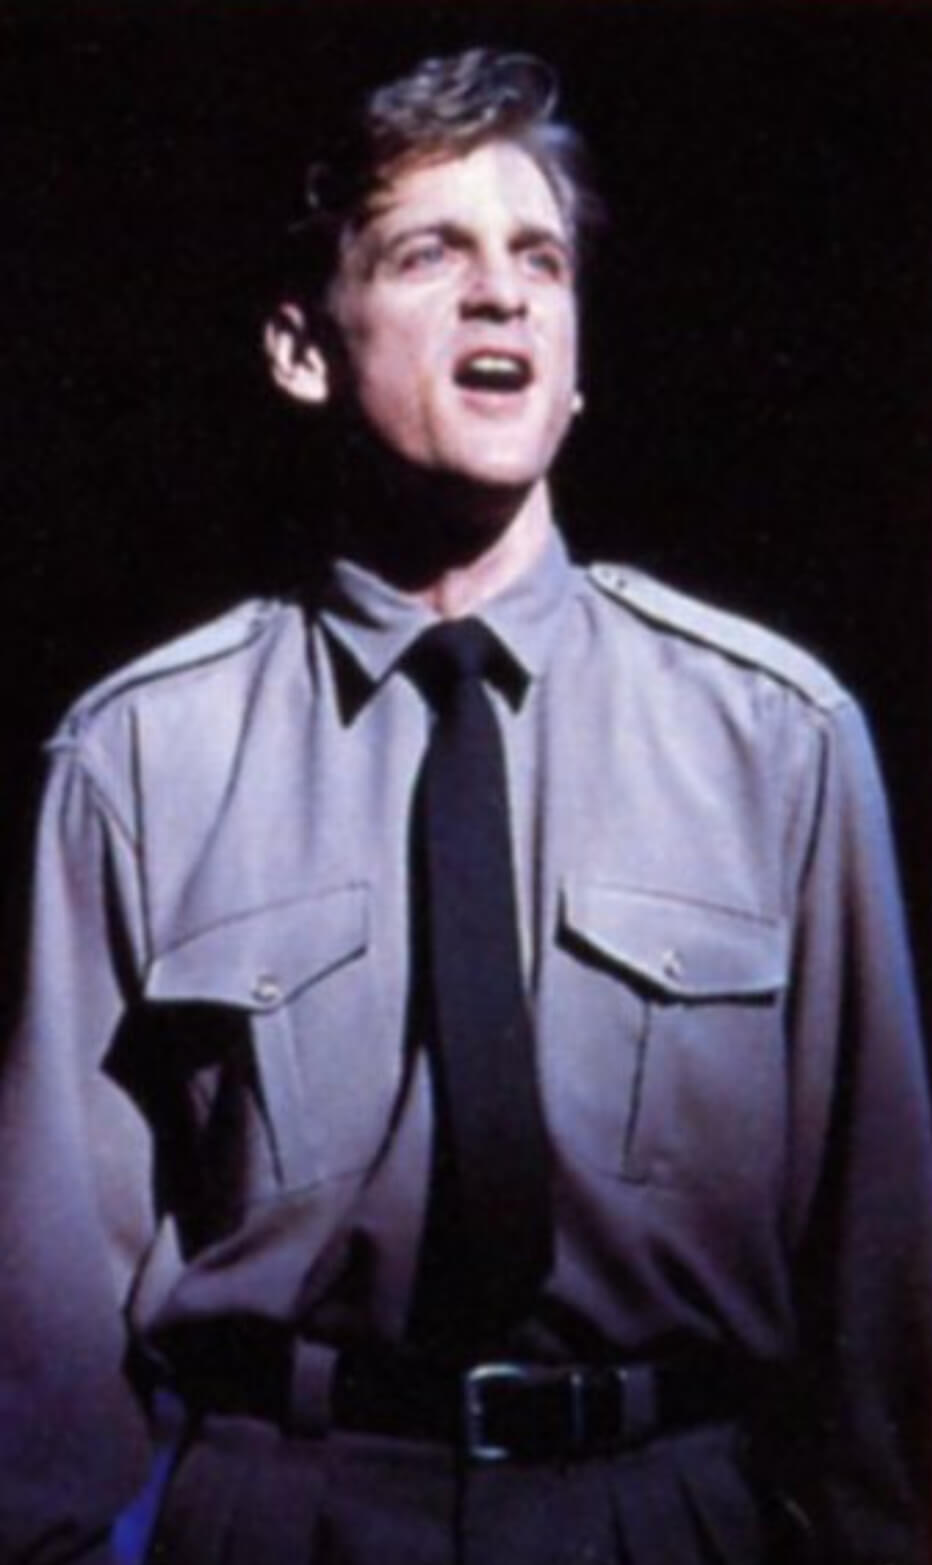 """Bill Kelly (Daniel McDonald in a military shirt and black tie) singing in a solo moment in the spotlight, singing """"The Last Girl""""."""